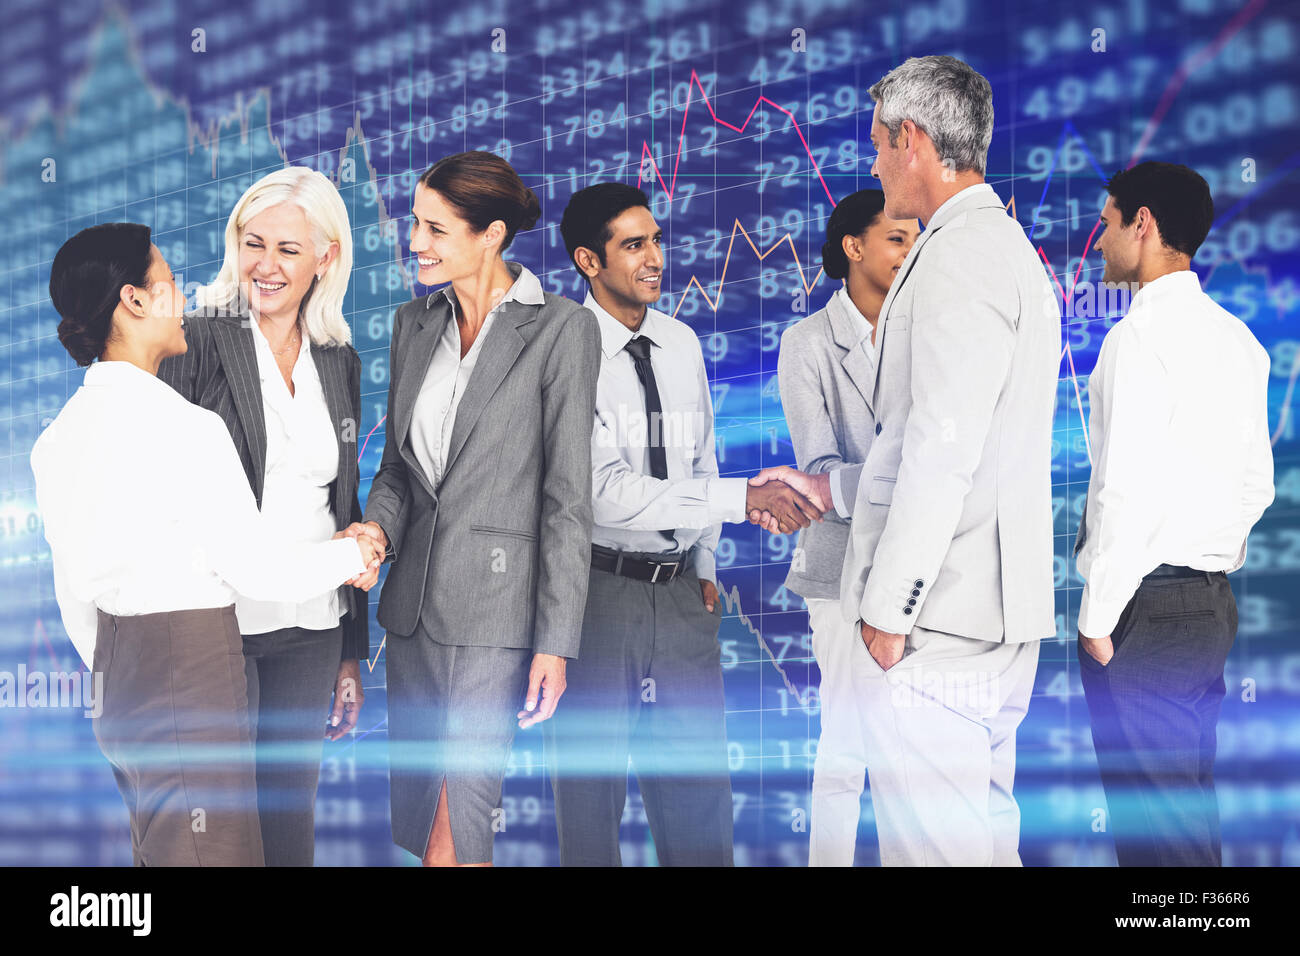 Composite image of business people speaking together - Stock Image